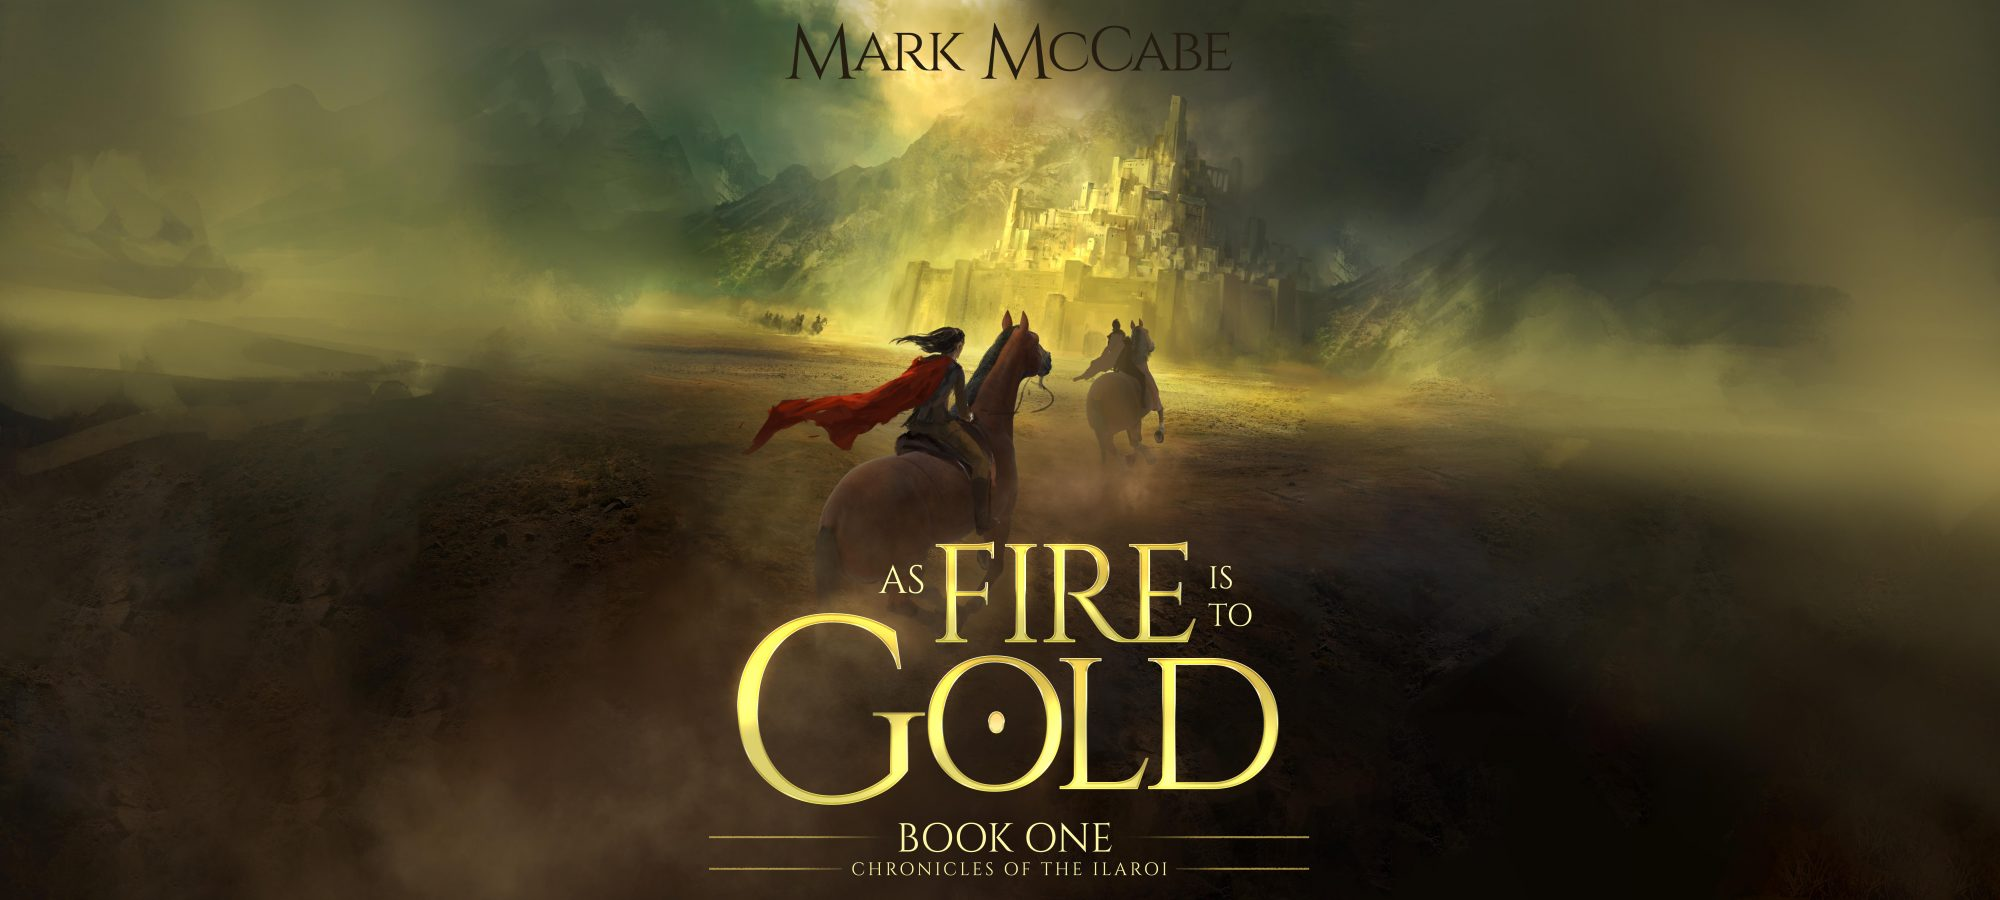 Mark McCabe | Author